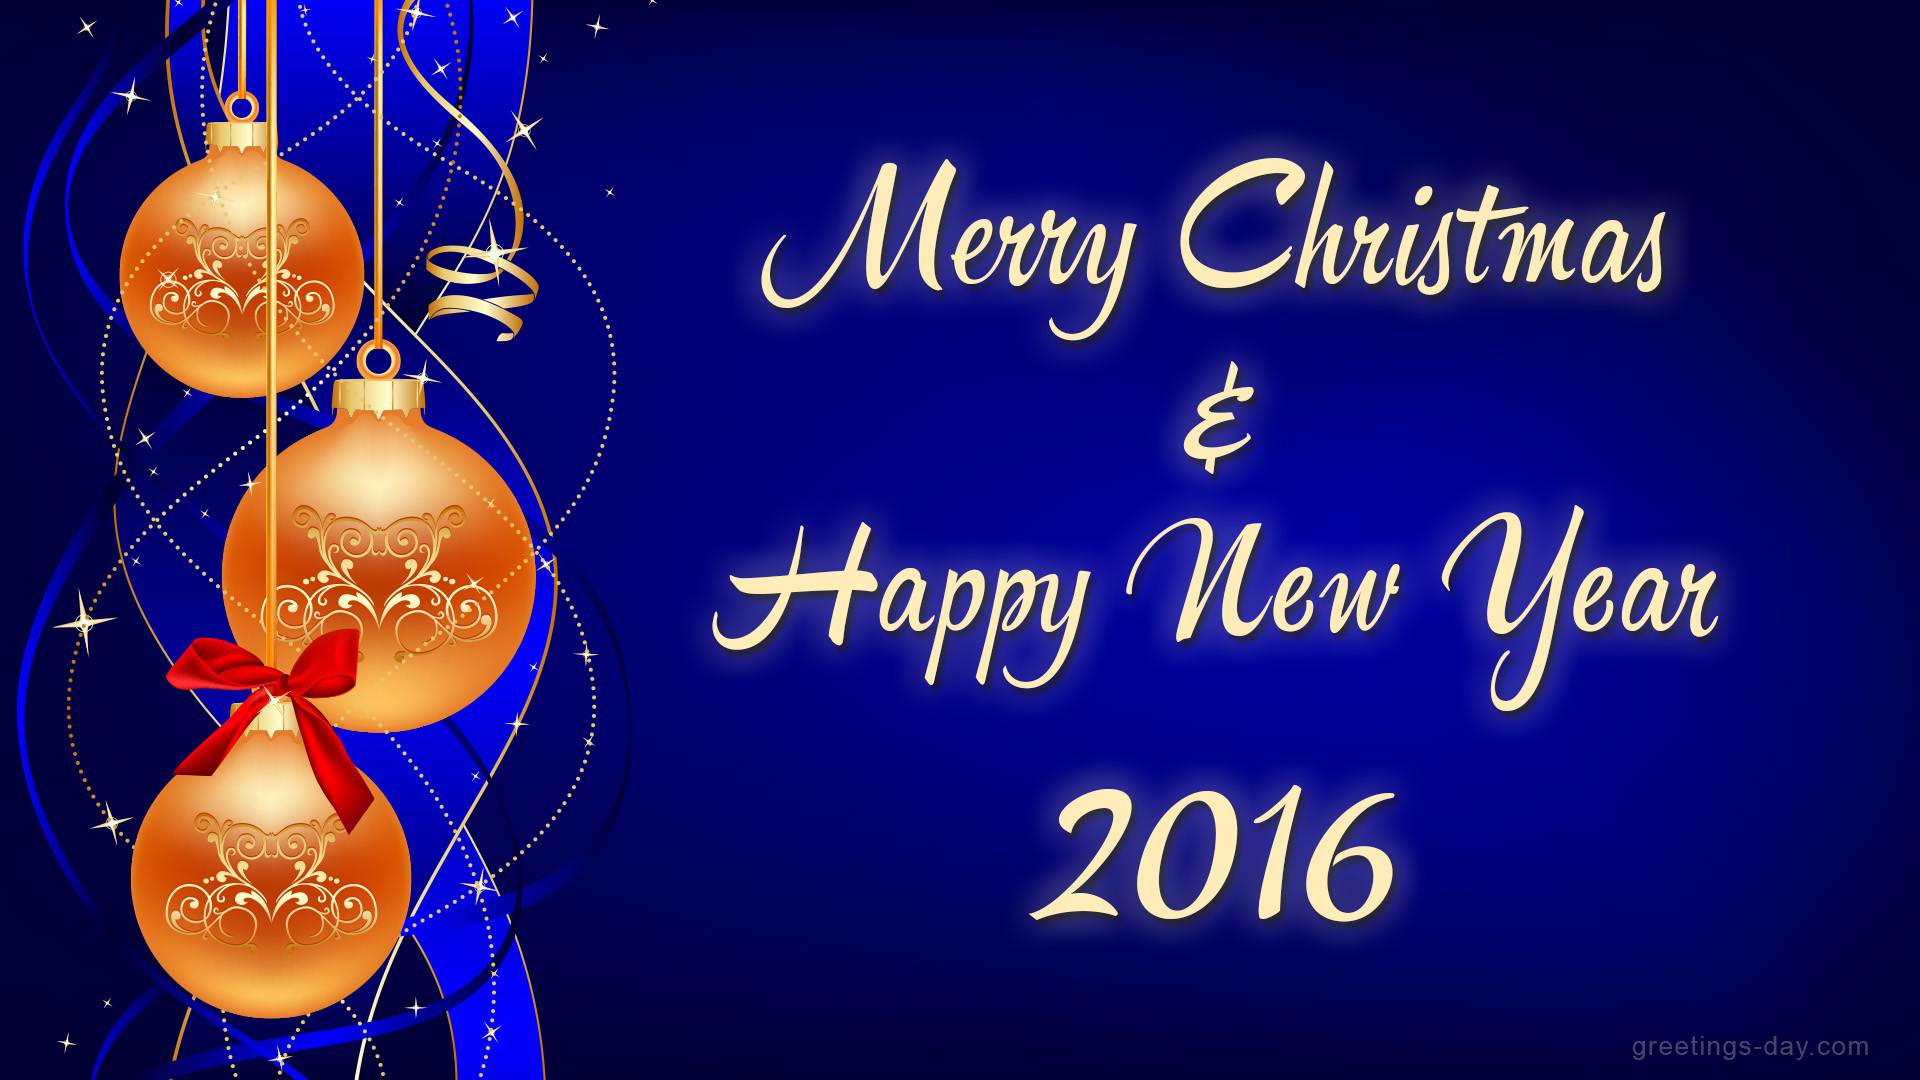 40 wonderful merry christmas pictures and images merry christmas happy new year 2016 picture m4hsunfo